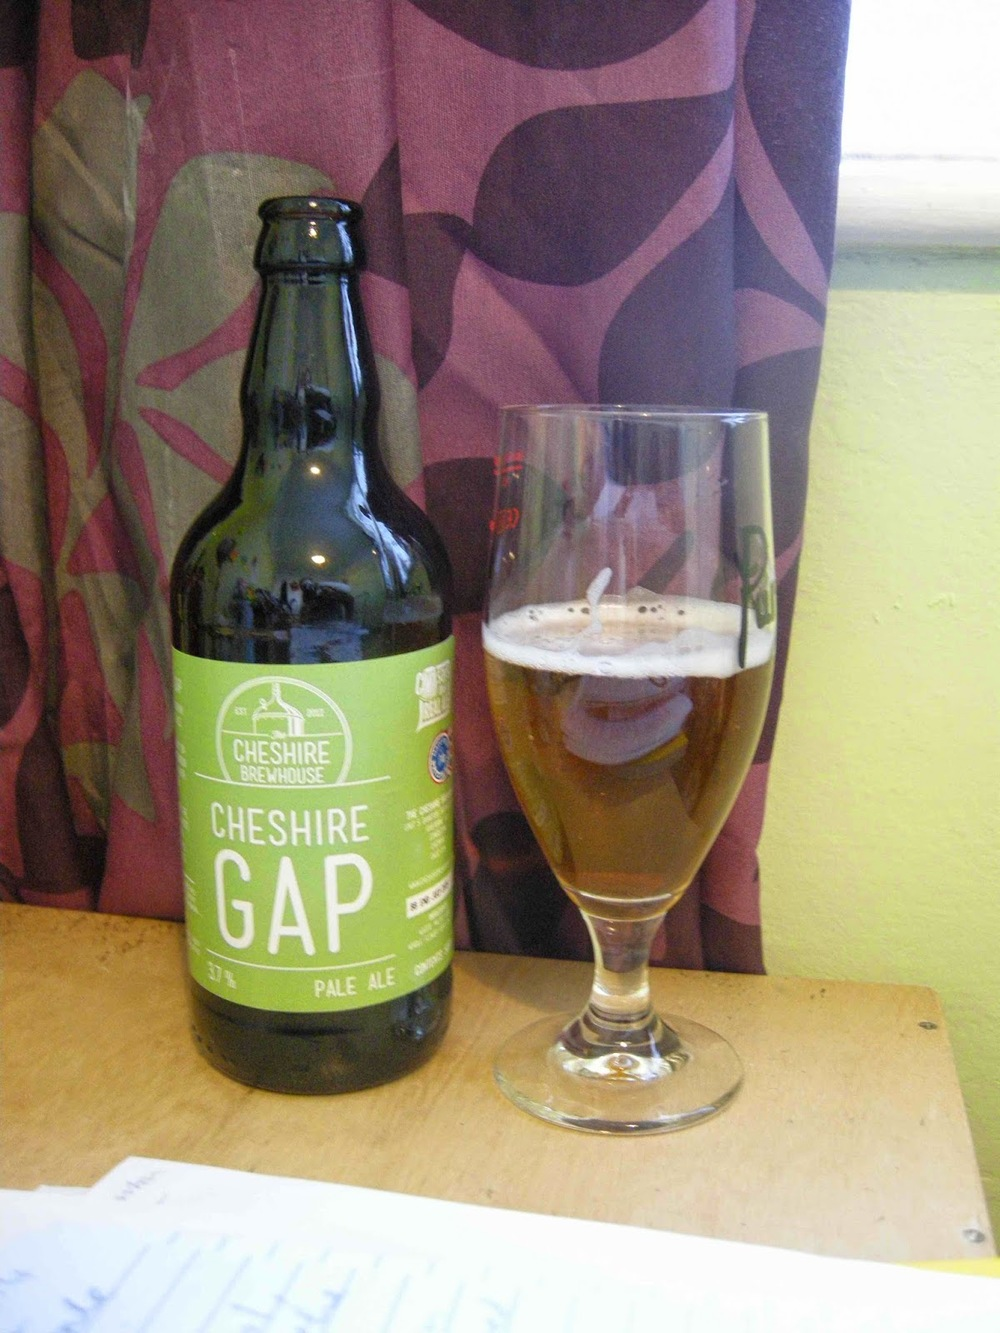 Cheshire Brewhouse Cheshire Gap pale ale (3.7%)